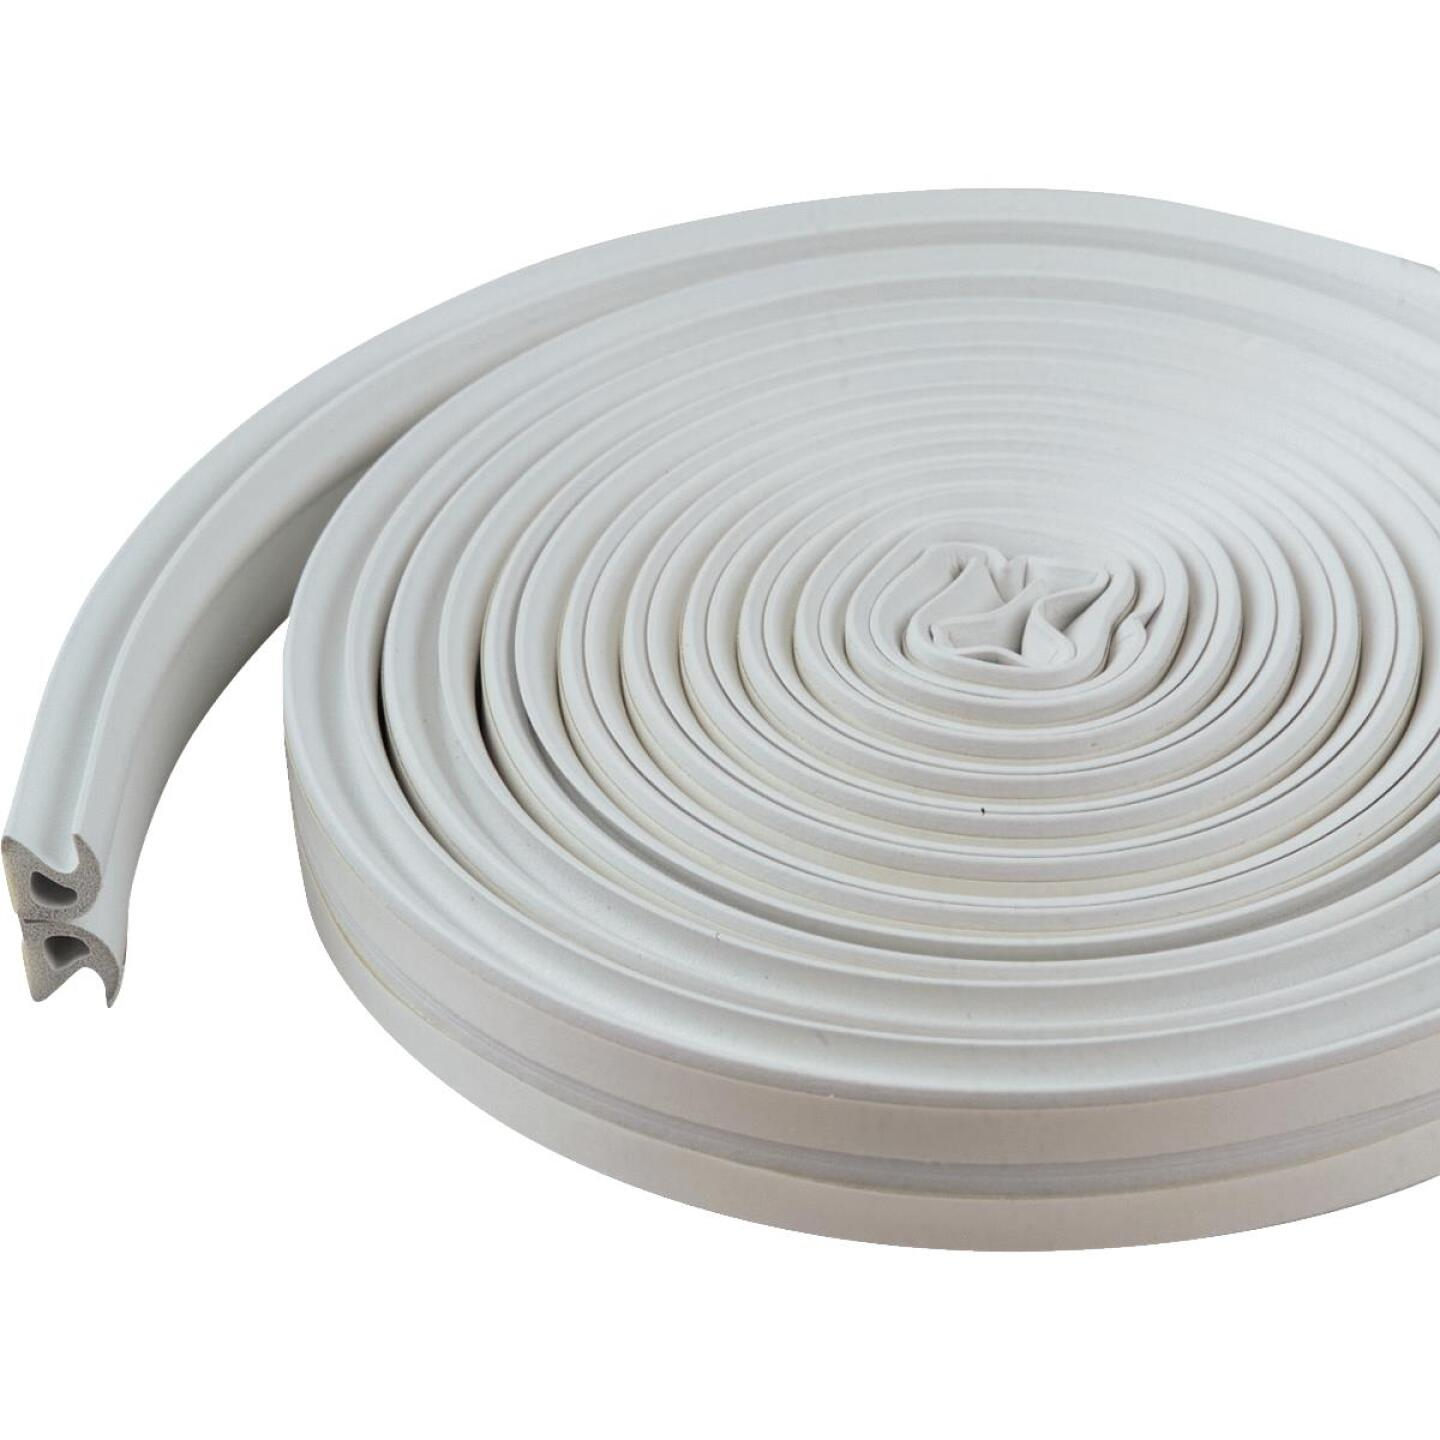 M-D White 17' Rubber Weatherstrip Image 2